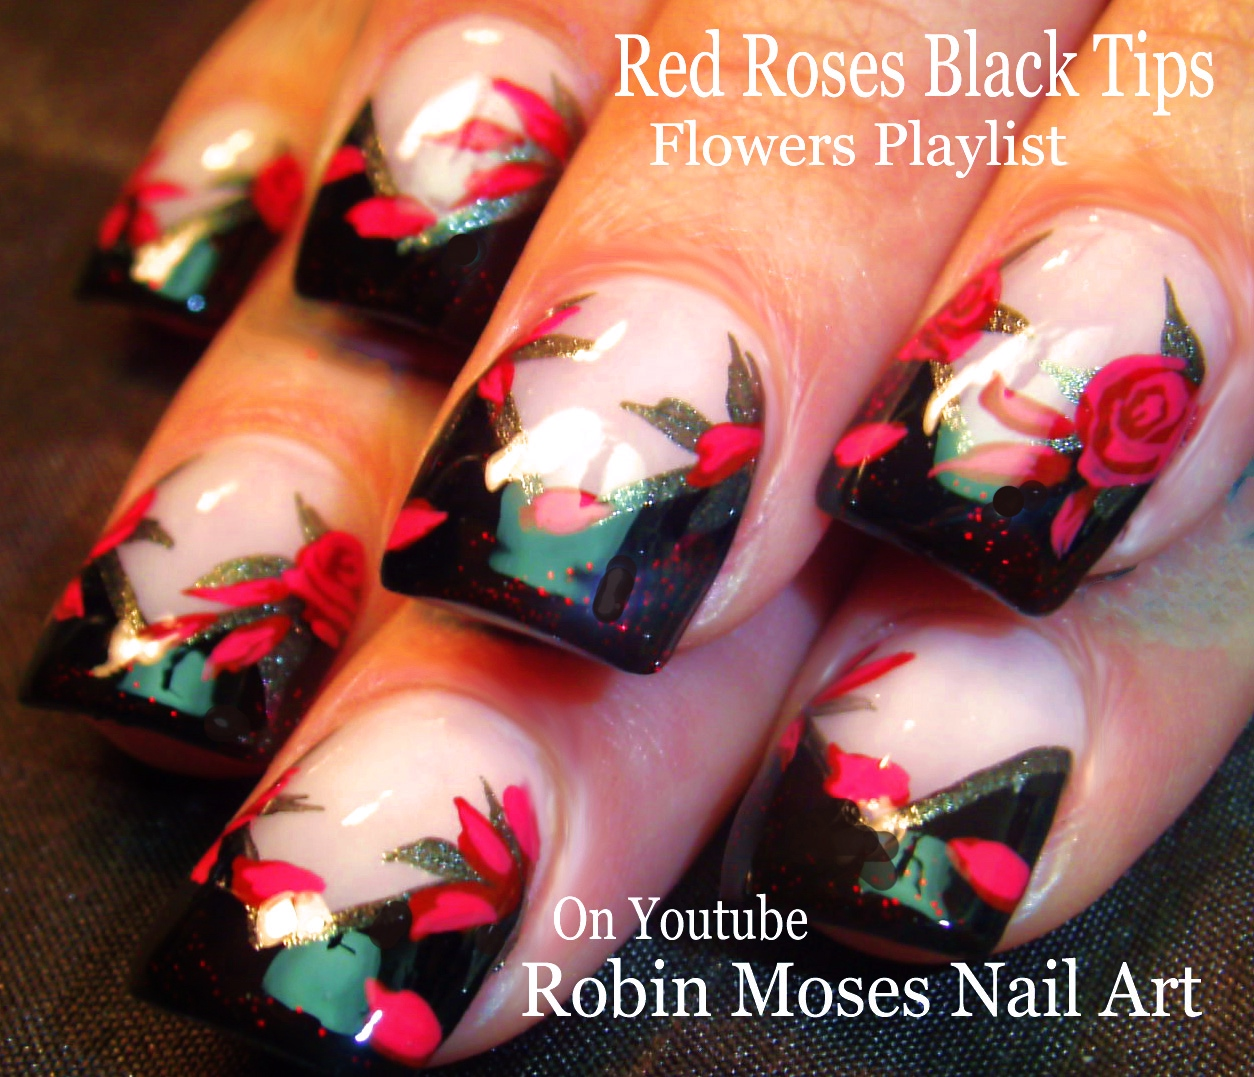 Nail art by robin moses red roses on black tips roses do it roses do it yourself how to paint roses red rose ideas red roses clip art red roses nail art red rose nails rose nails red rose design solutioingenieria Gallery